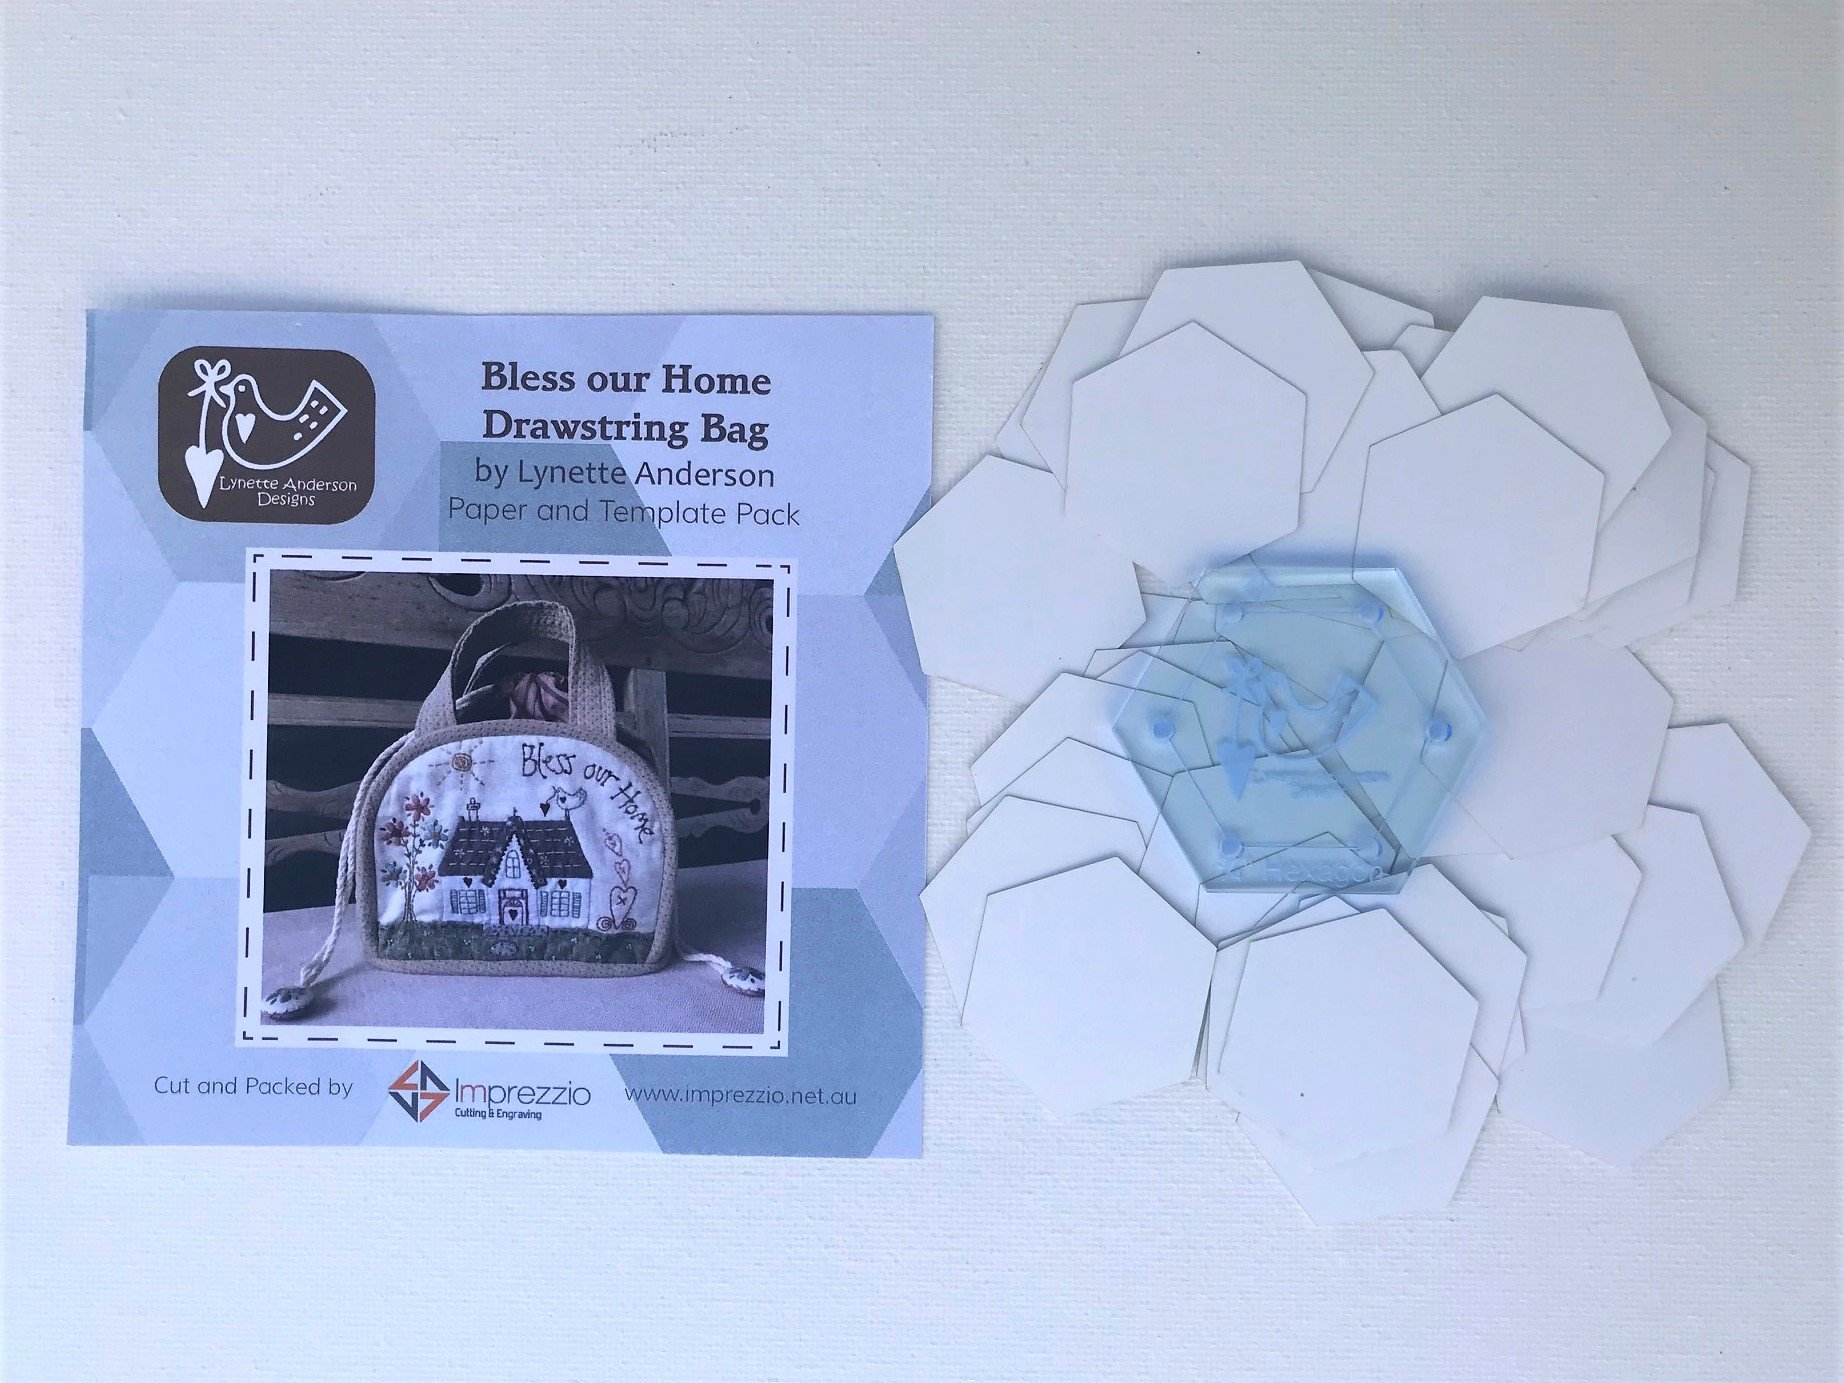 Bless Our Home Drawstring Bag Paper Pieces and Template Pack